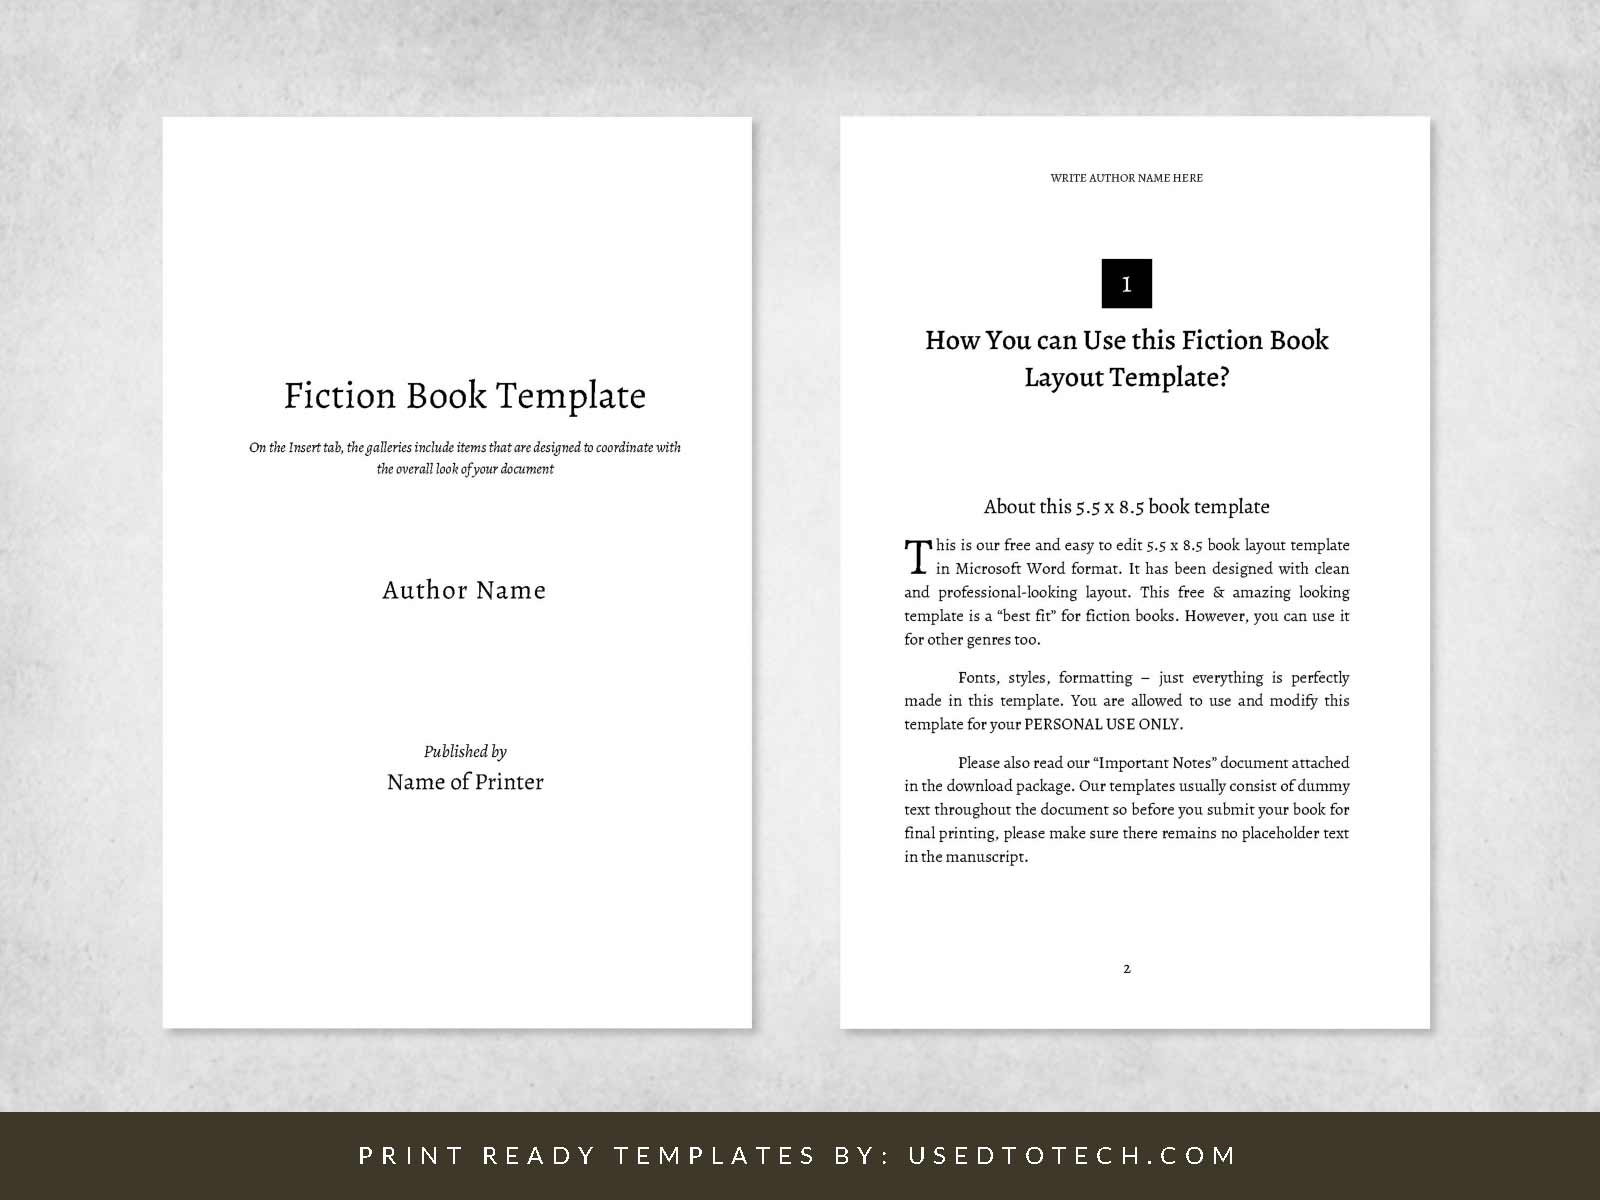 Fiction book layout template in Word for 5.5 x 8.5 digest